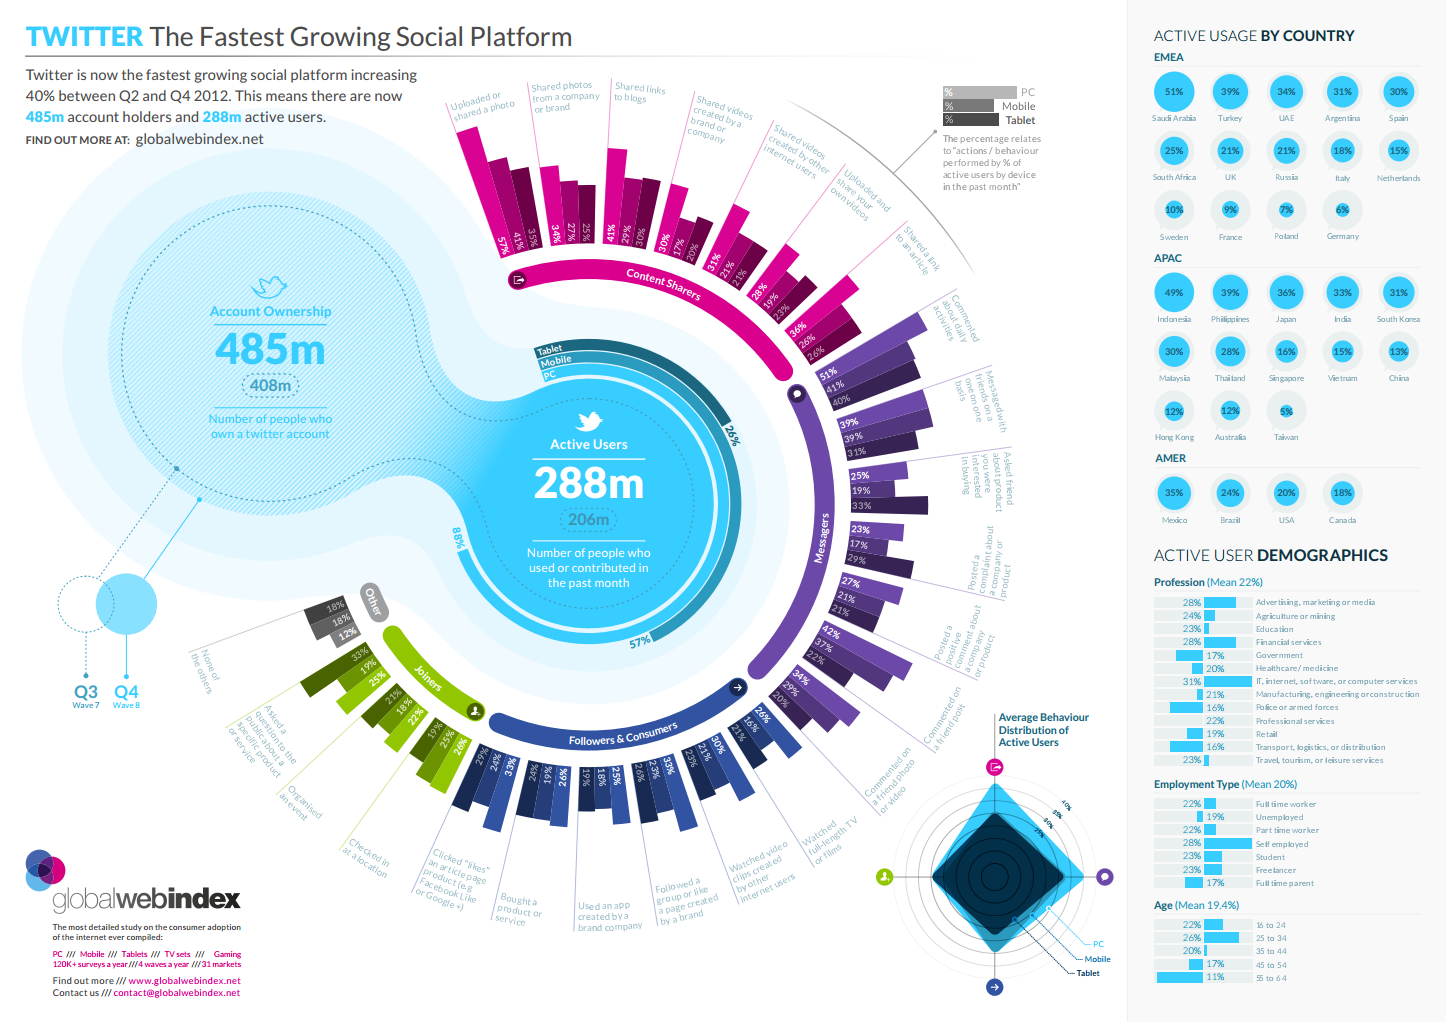 Twitter is the fastest growing social platform